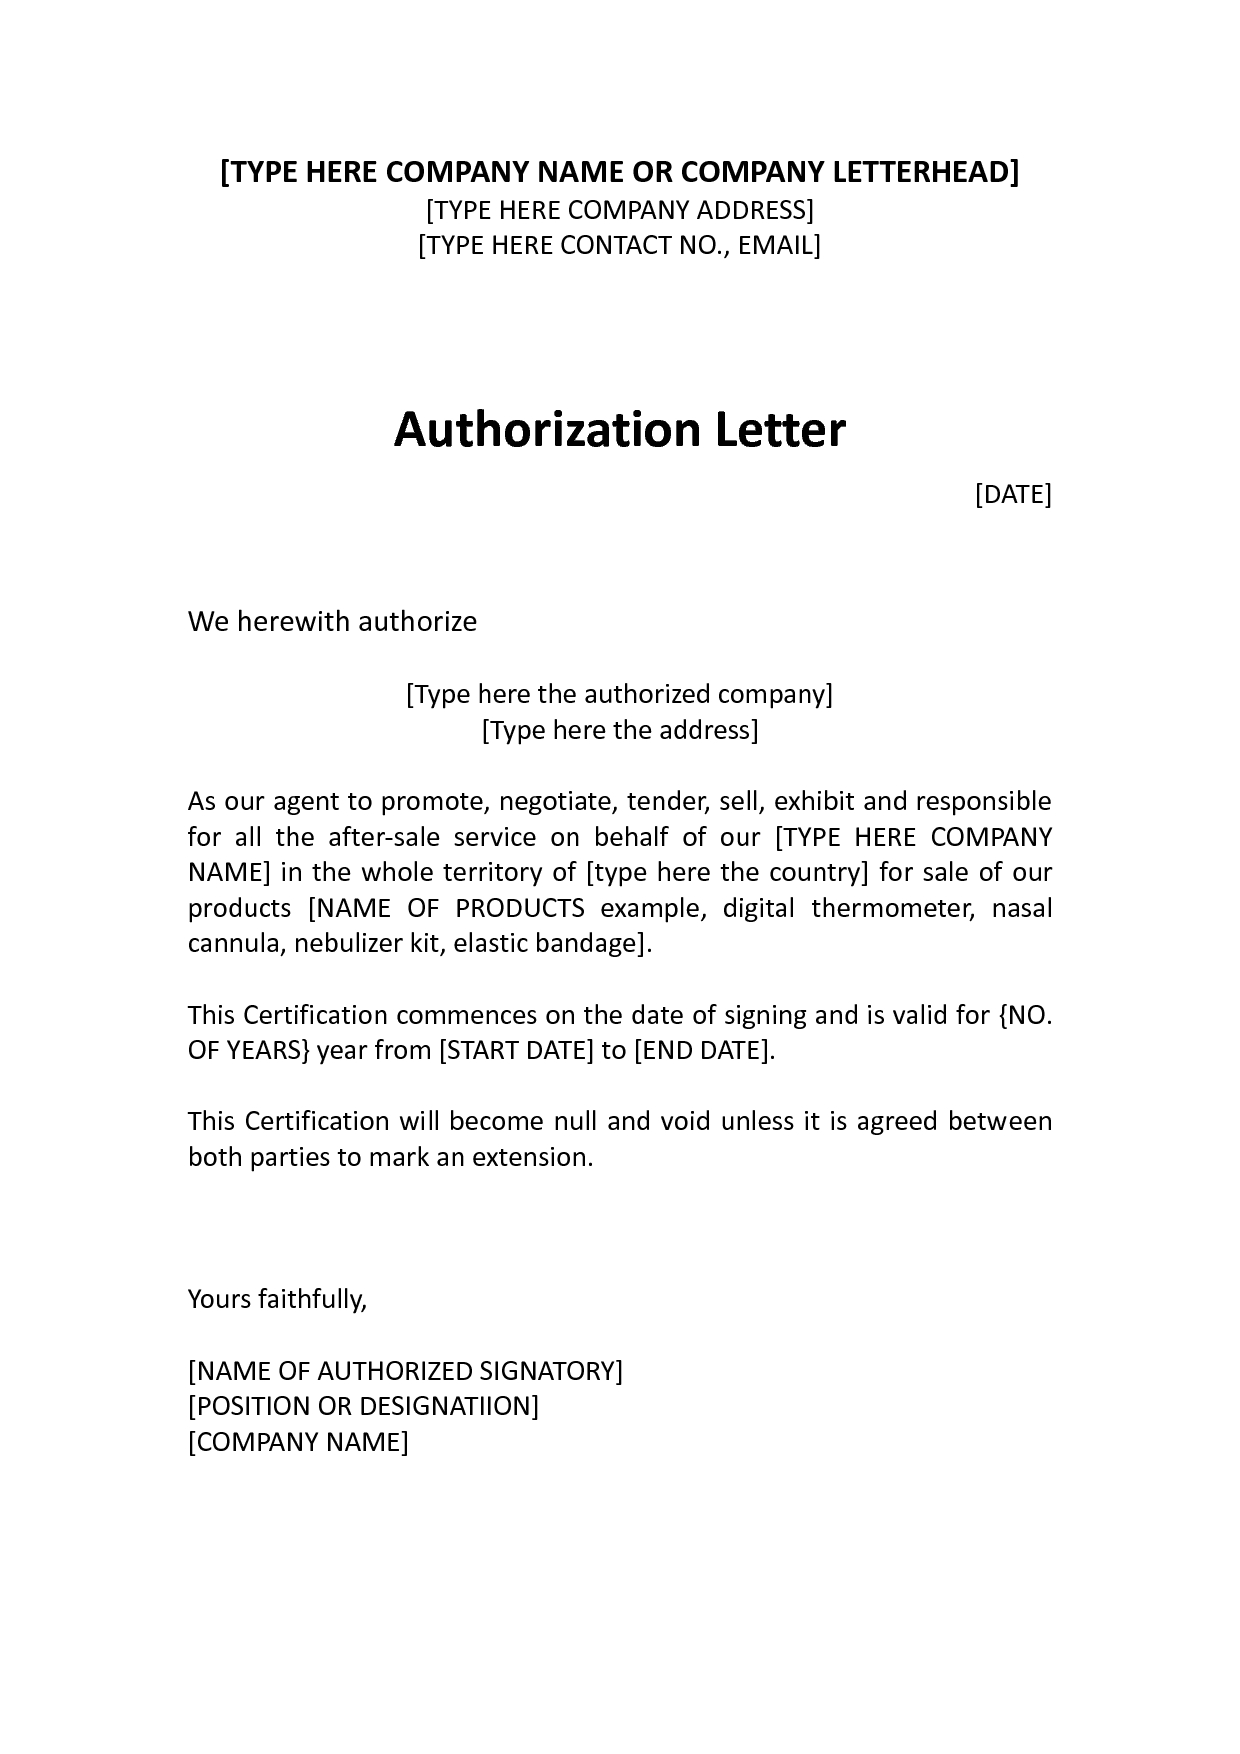 Parental Consent Letter Template - Authorization Distributor Letter Sample Distributor Dealer